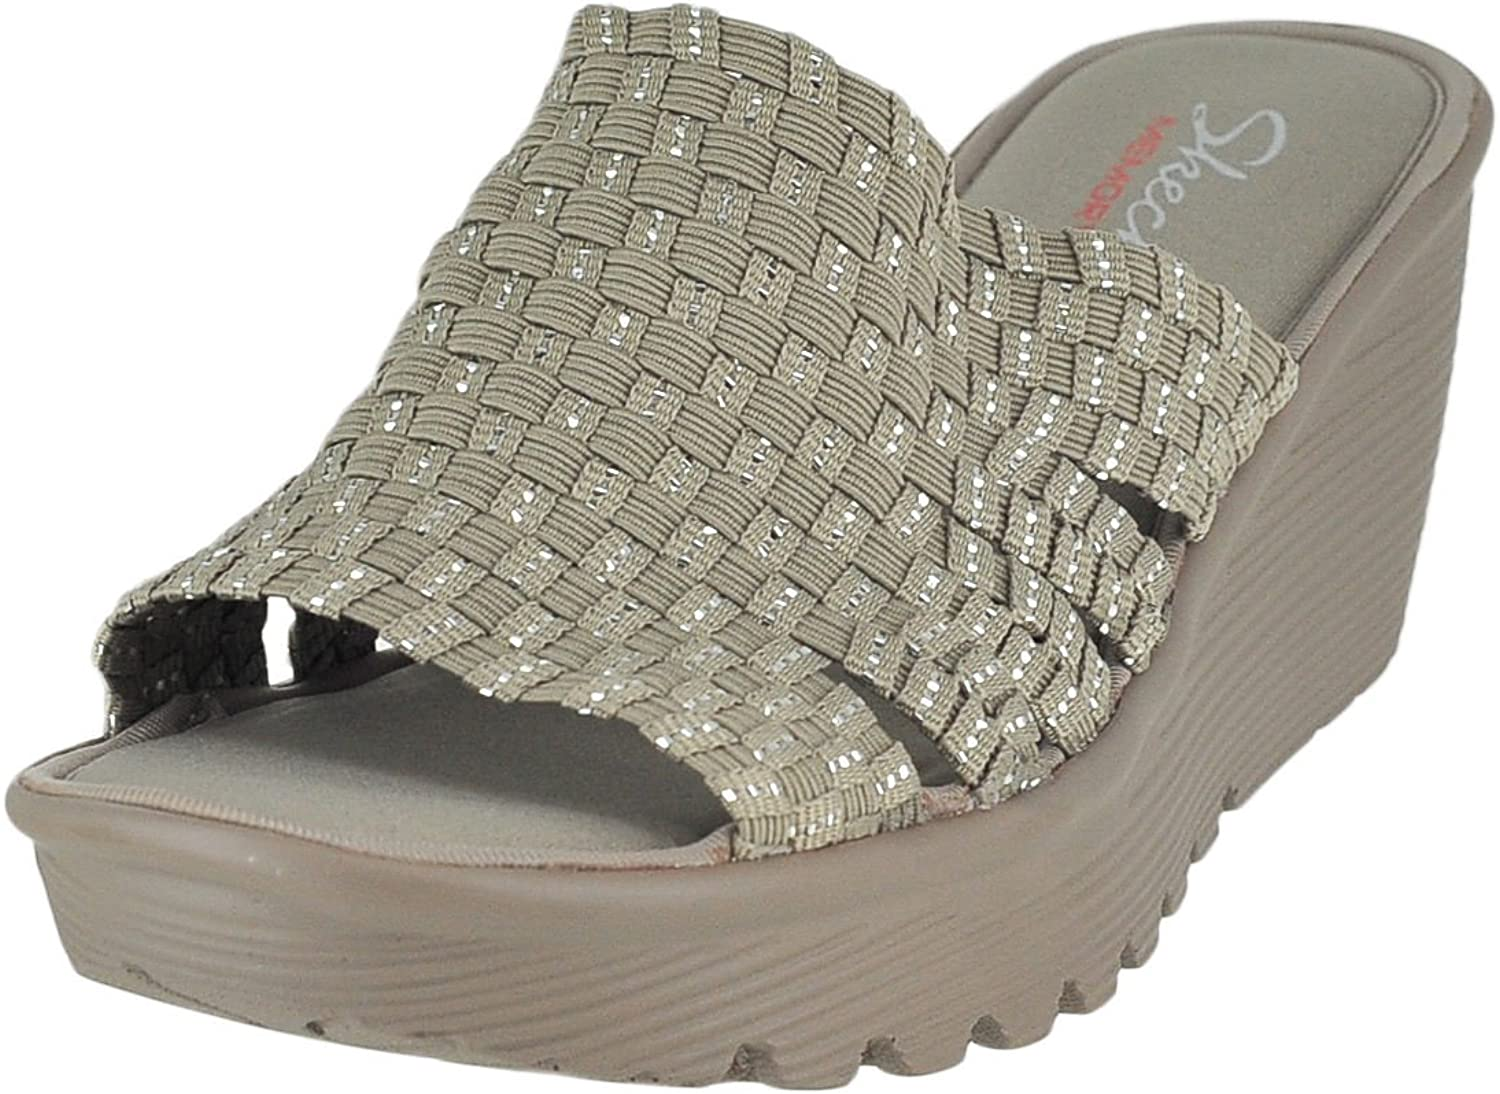 Skechers Cali Women's Parallel Wedge Sandal